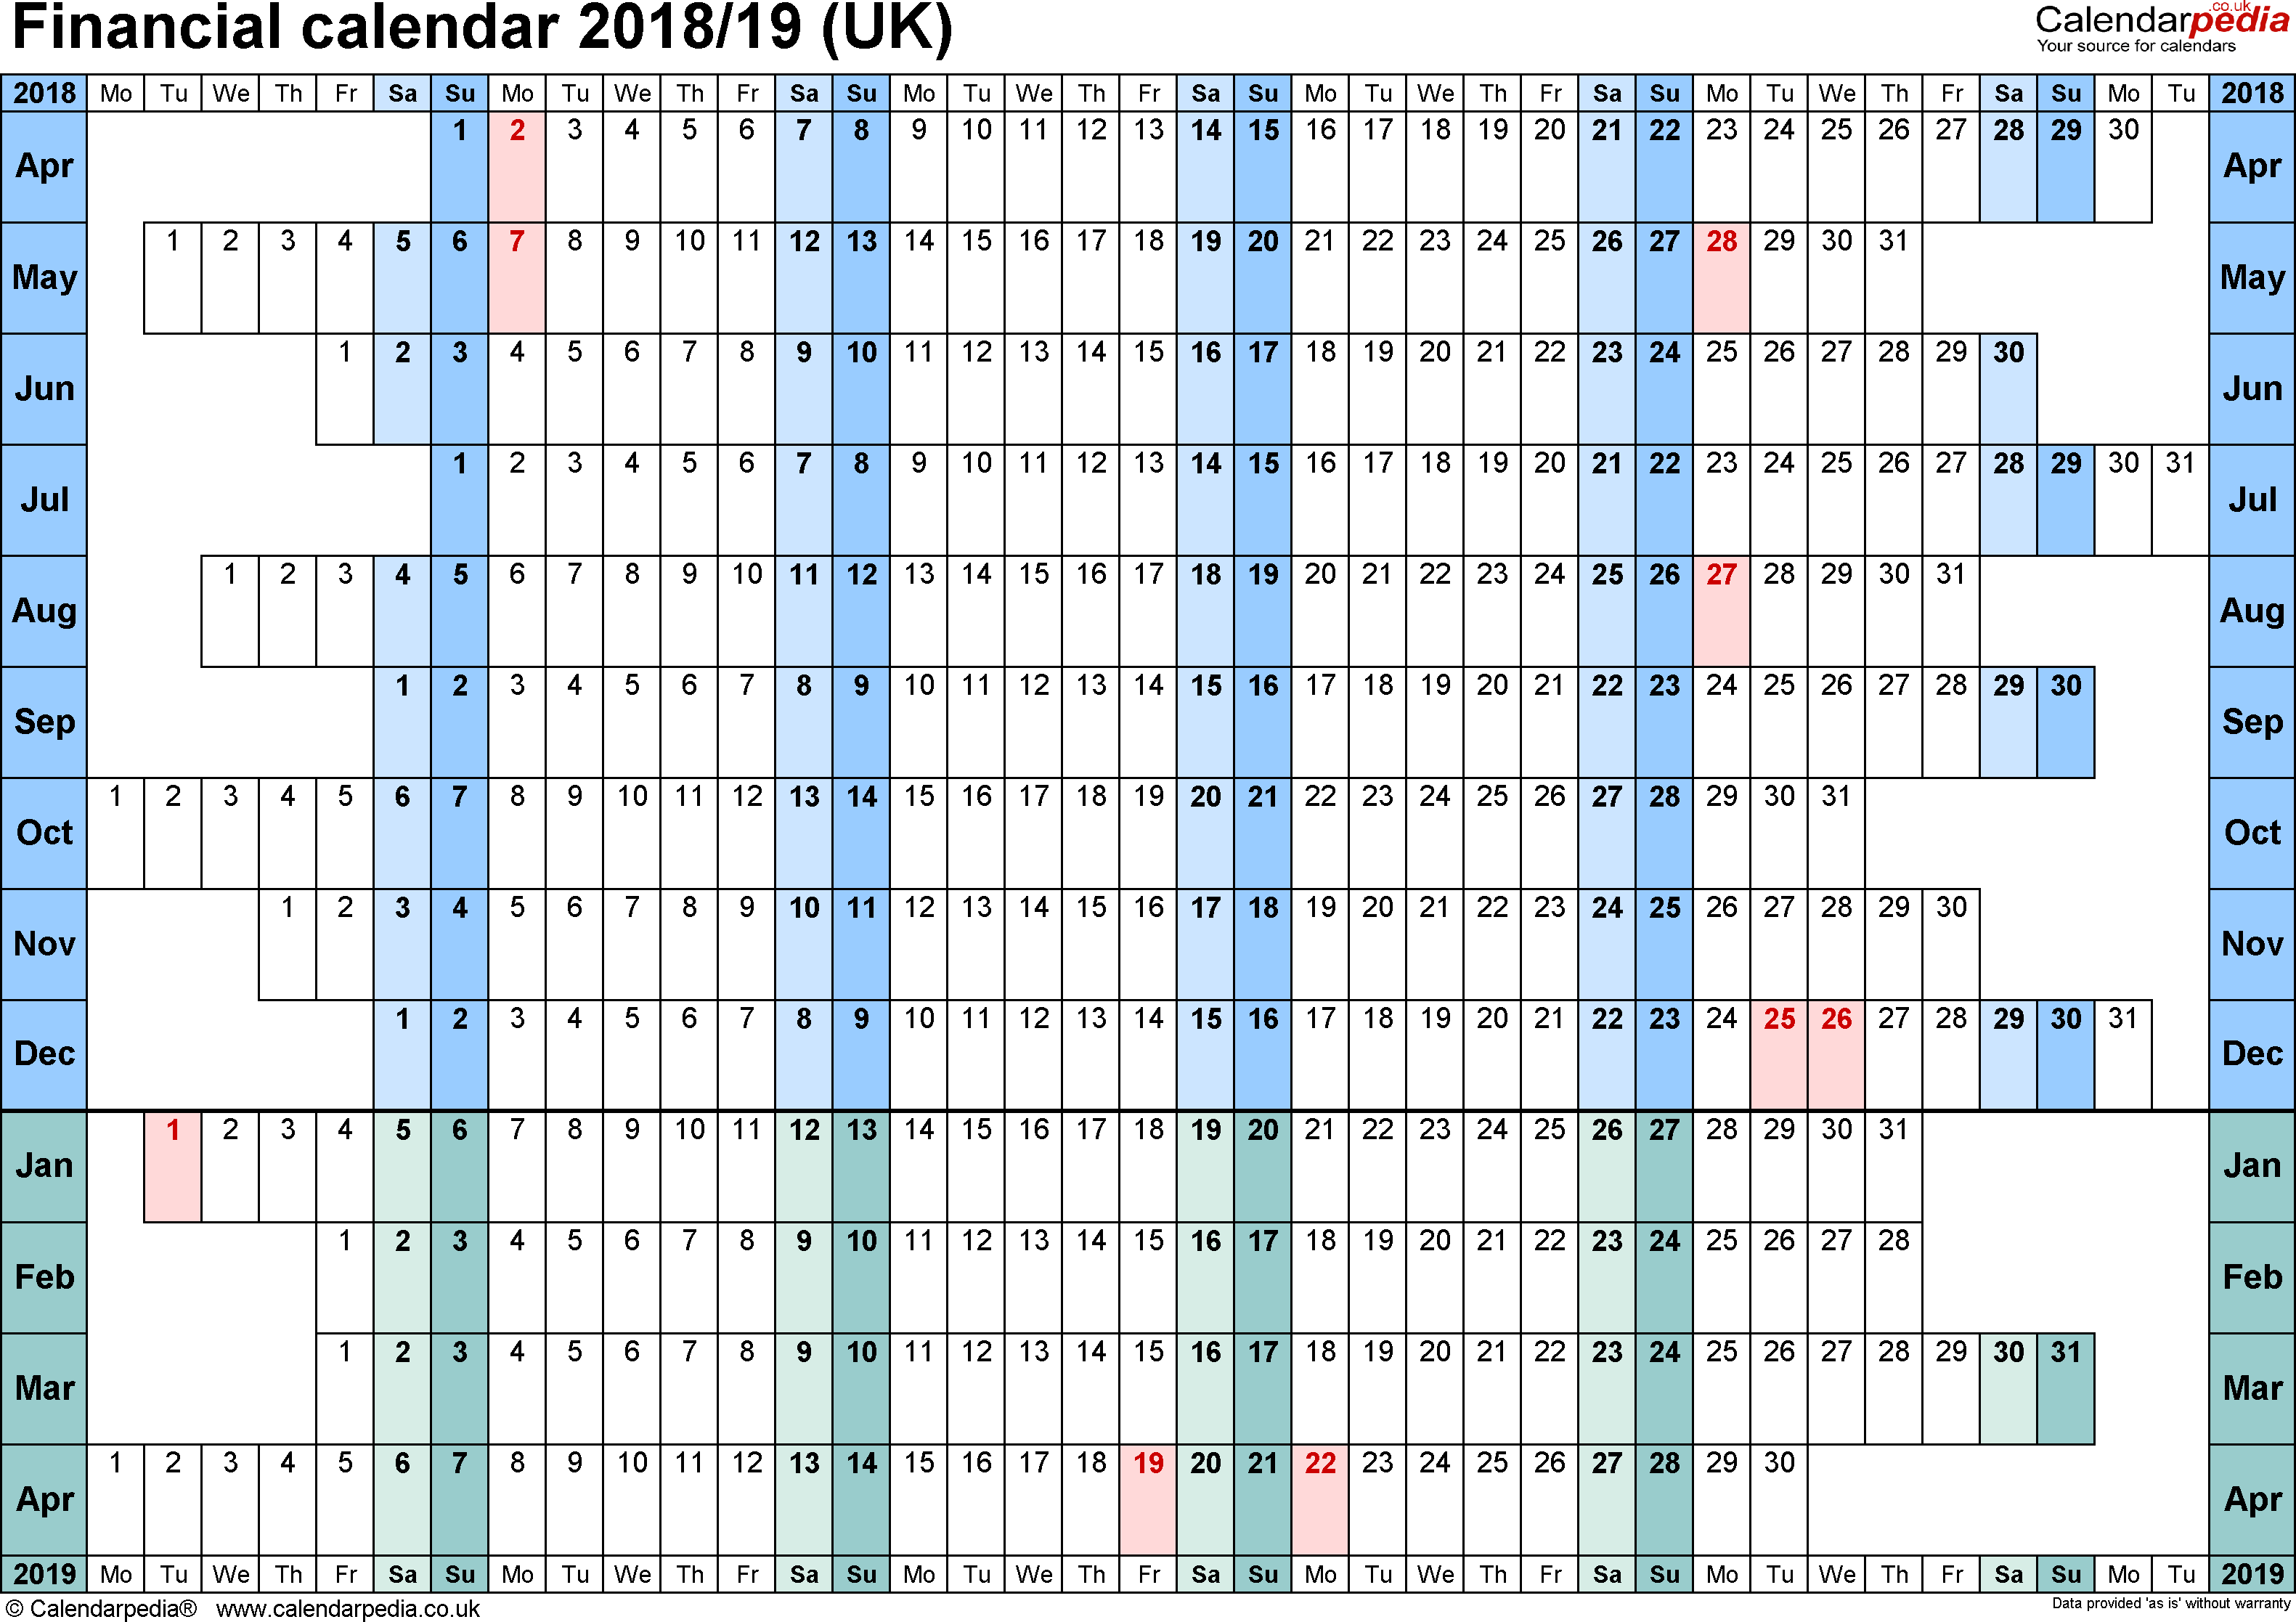 Fiscal Year 2019 Calendar Printable With Financial Calendars 2018 19 UK In PDF Format